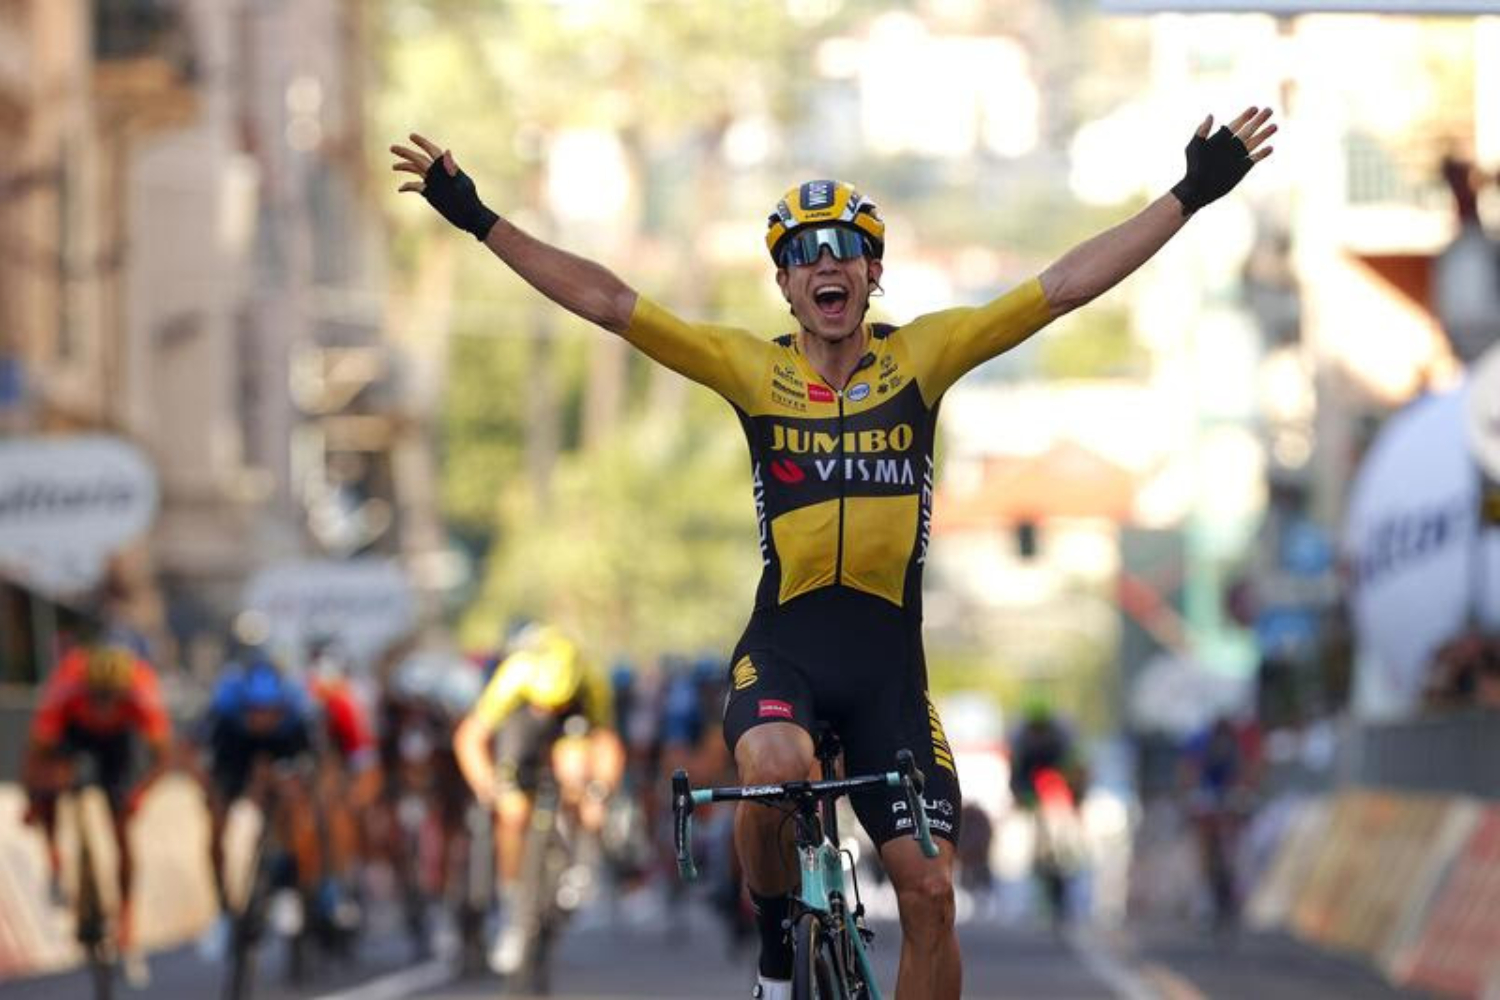 Milano - Italy - wielrennen - cycling - cyclisme - radsport - Wout Van Aert (BEL - Team Jumbo - Visma) pictured during Milano Sanremo 2020 - photo LB/RB/Cor Vos © 2020